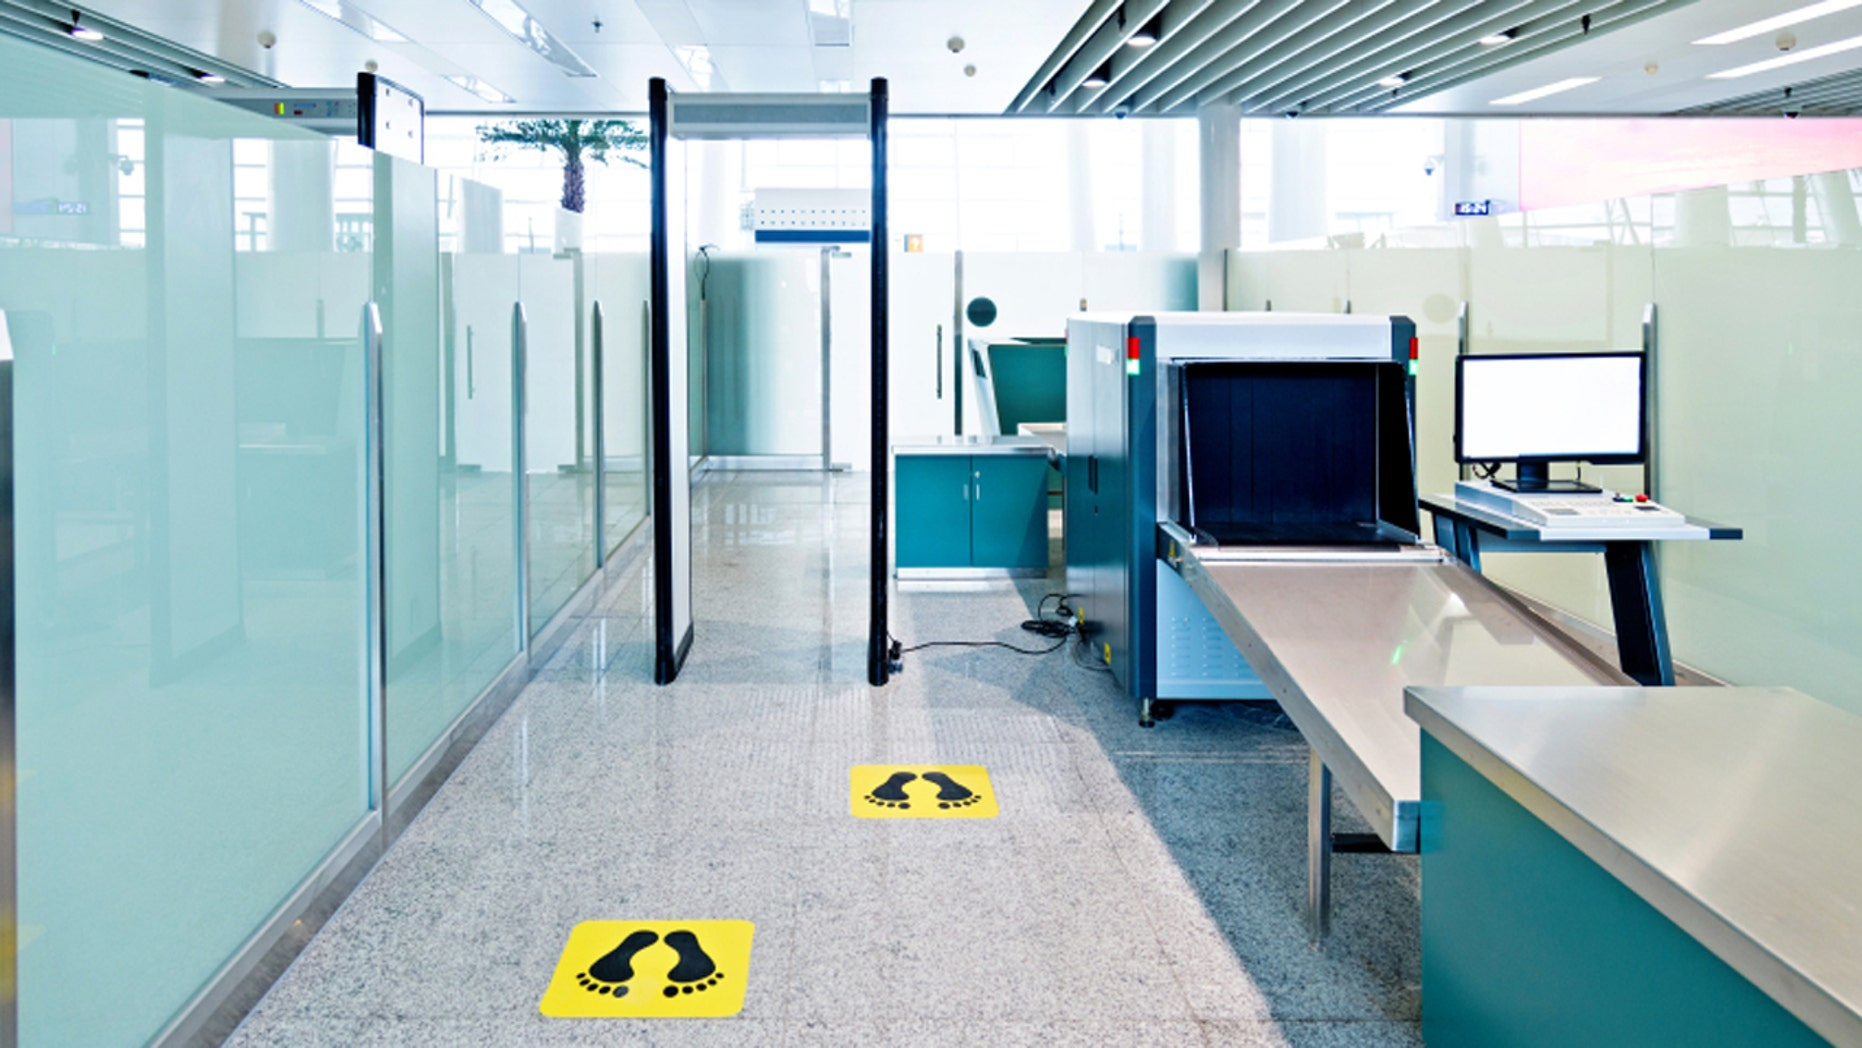 One traveler didn't understand the difference between the two airport x-ray machines.